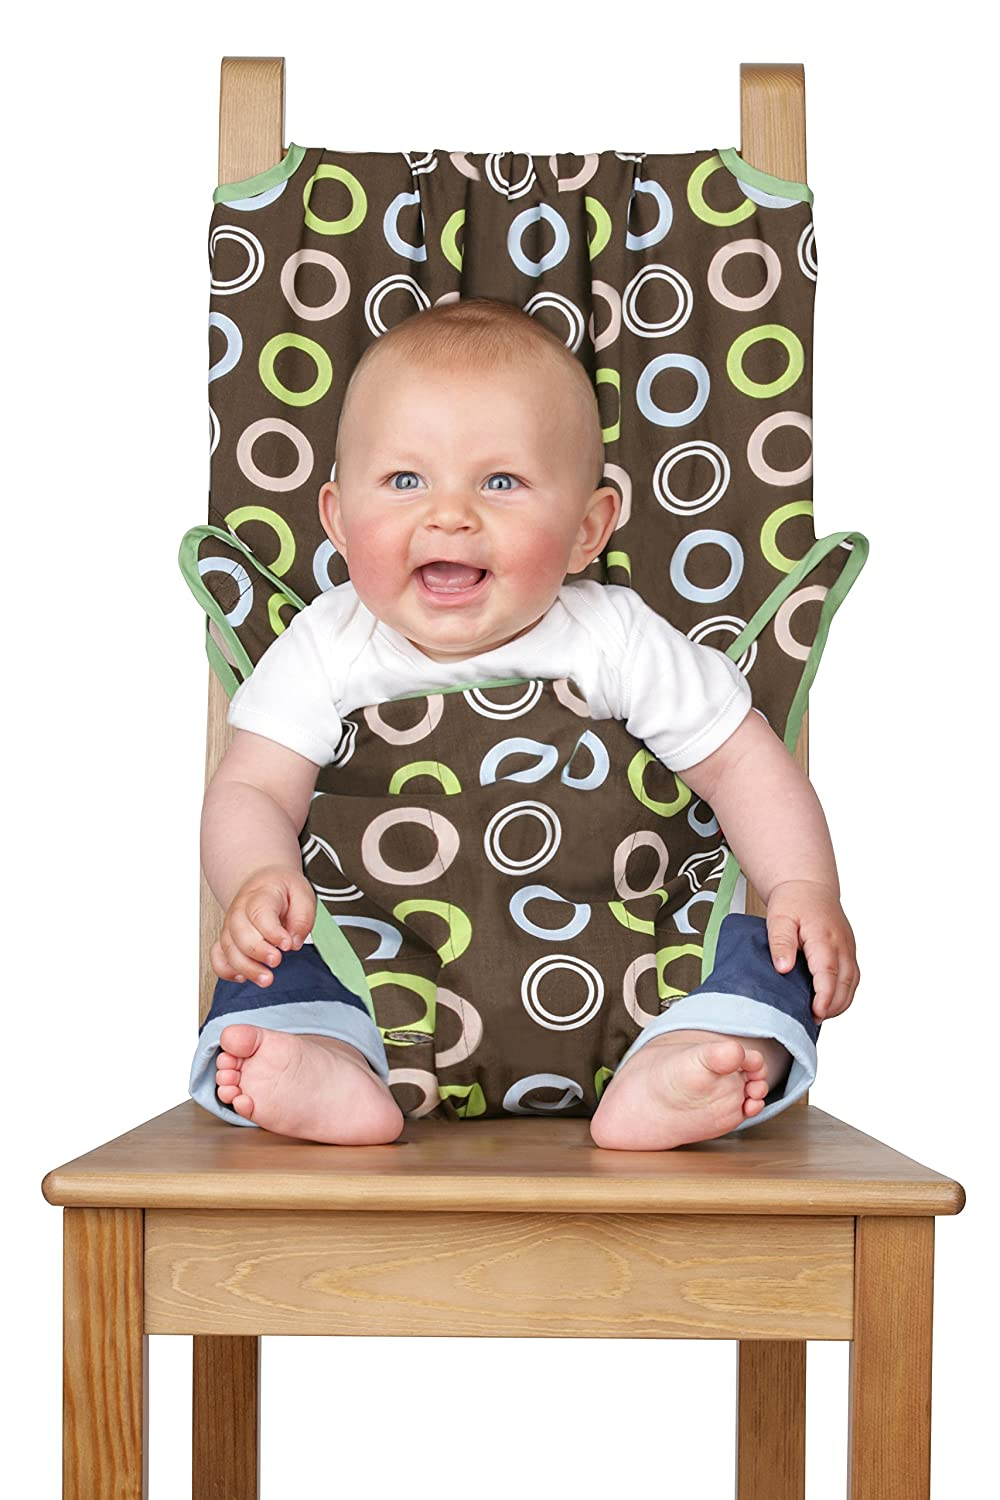 Totseat Chair Harness, The Washable and Squashable, Portable Travel High Chair in Chocolate Chip Trendykid TS005